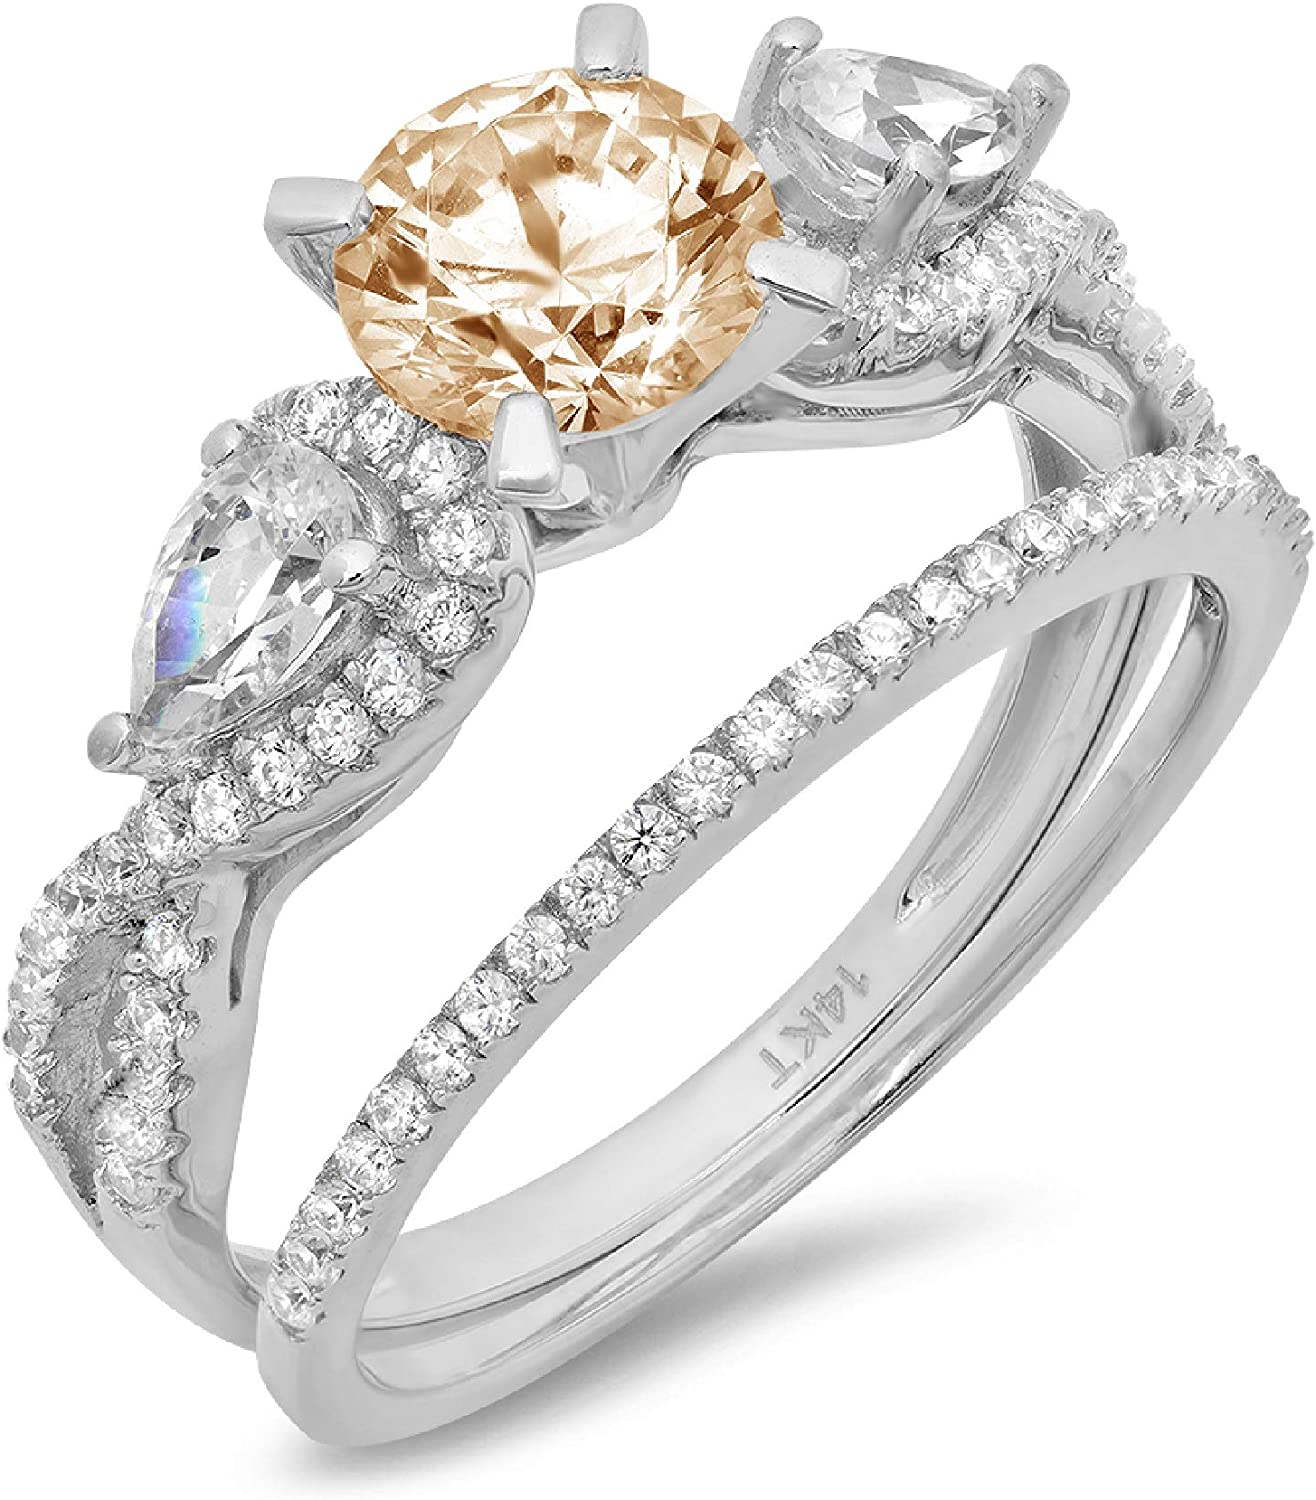 2.0ct Round Pear Cut Solitaire 3 stone Accent Designer Genuine Natural Morganite Engagement Promise Statement Anniversary Bridal Wedding Ring Band set Solid 14k White Gold